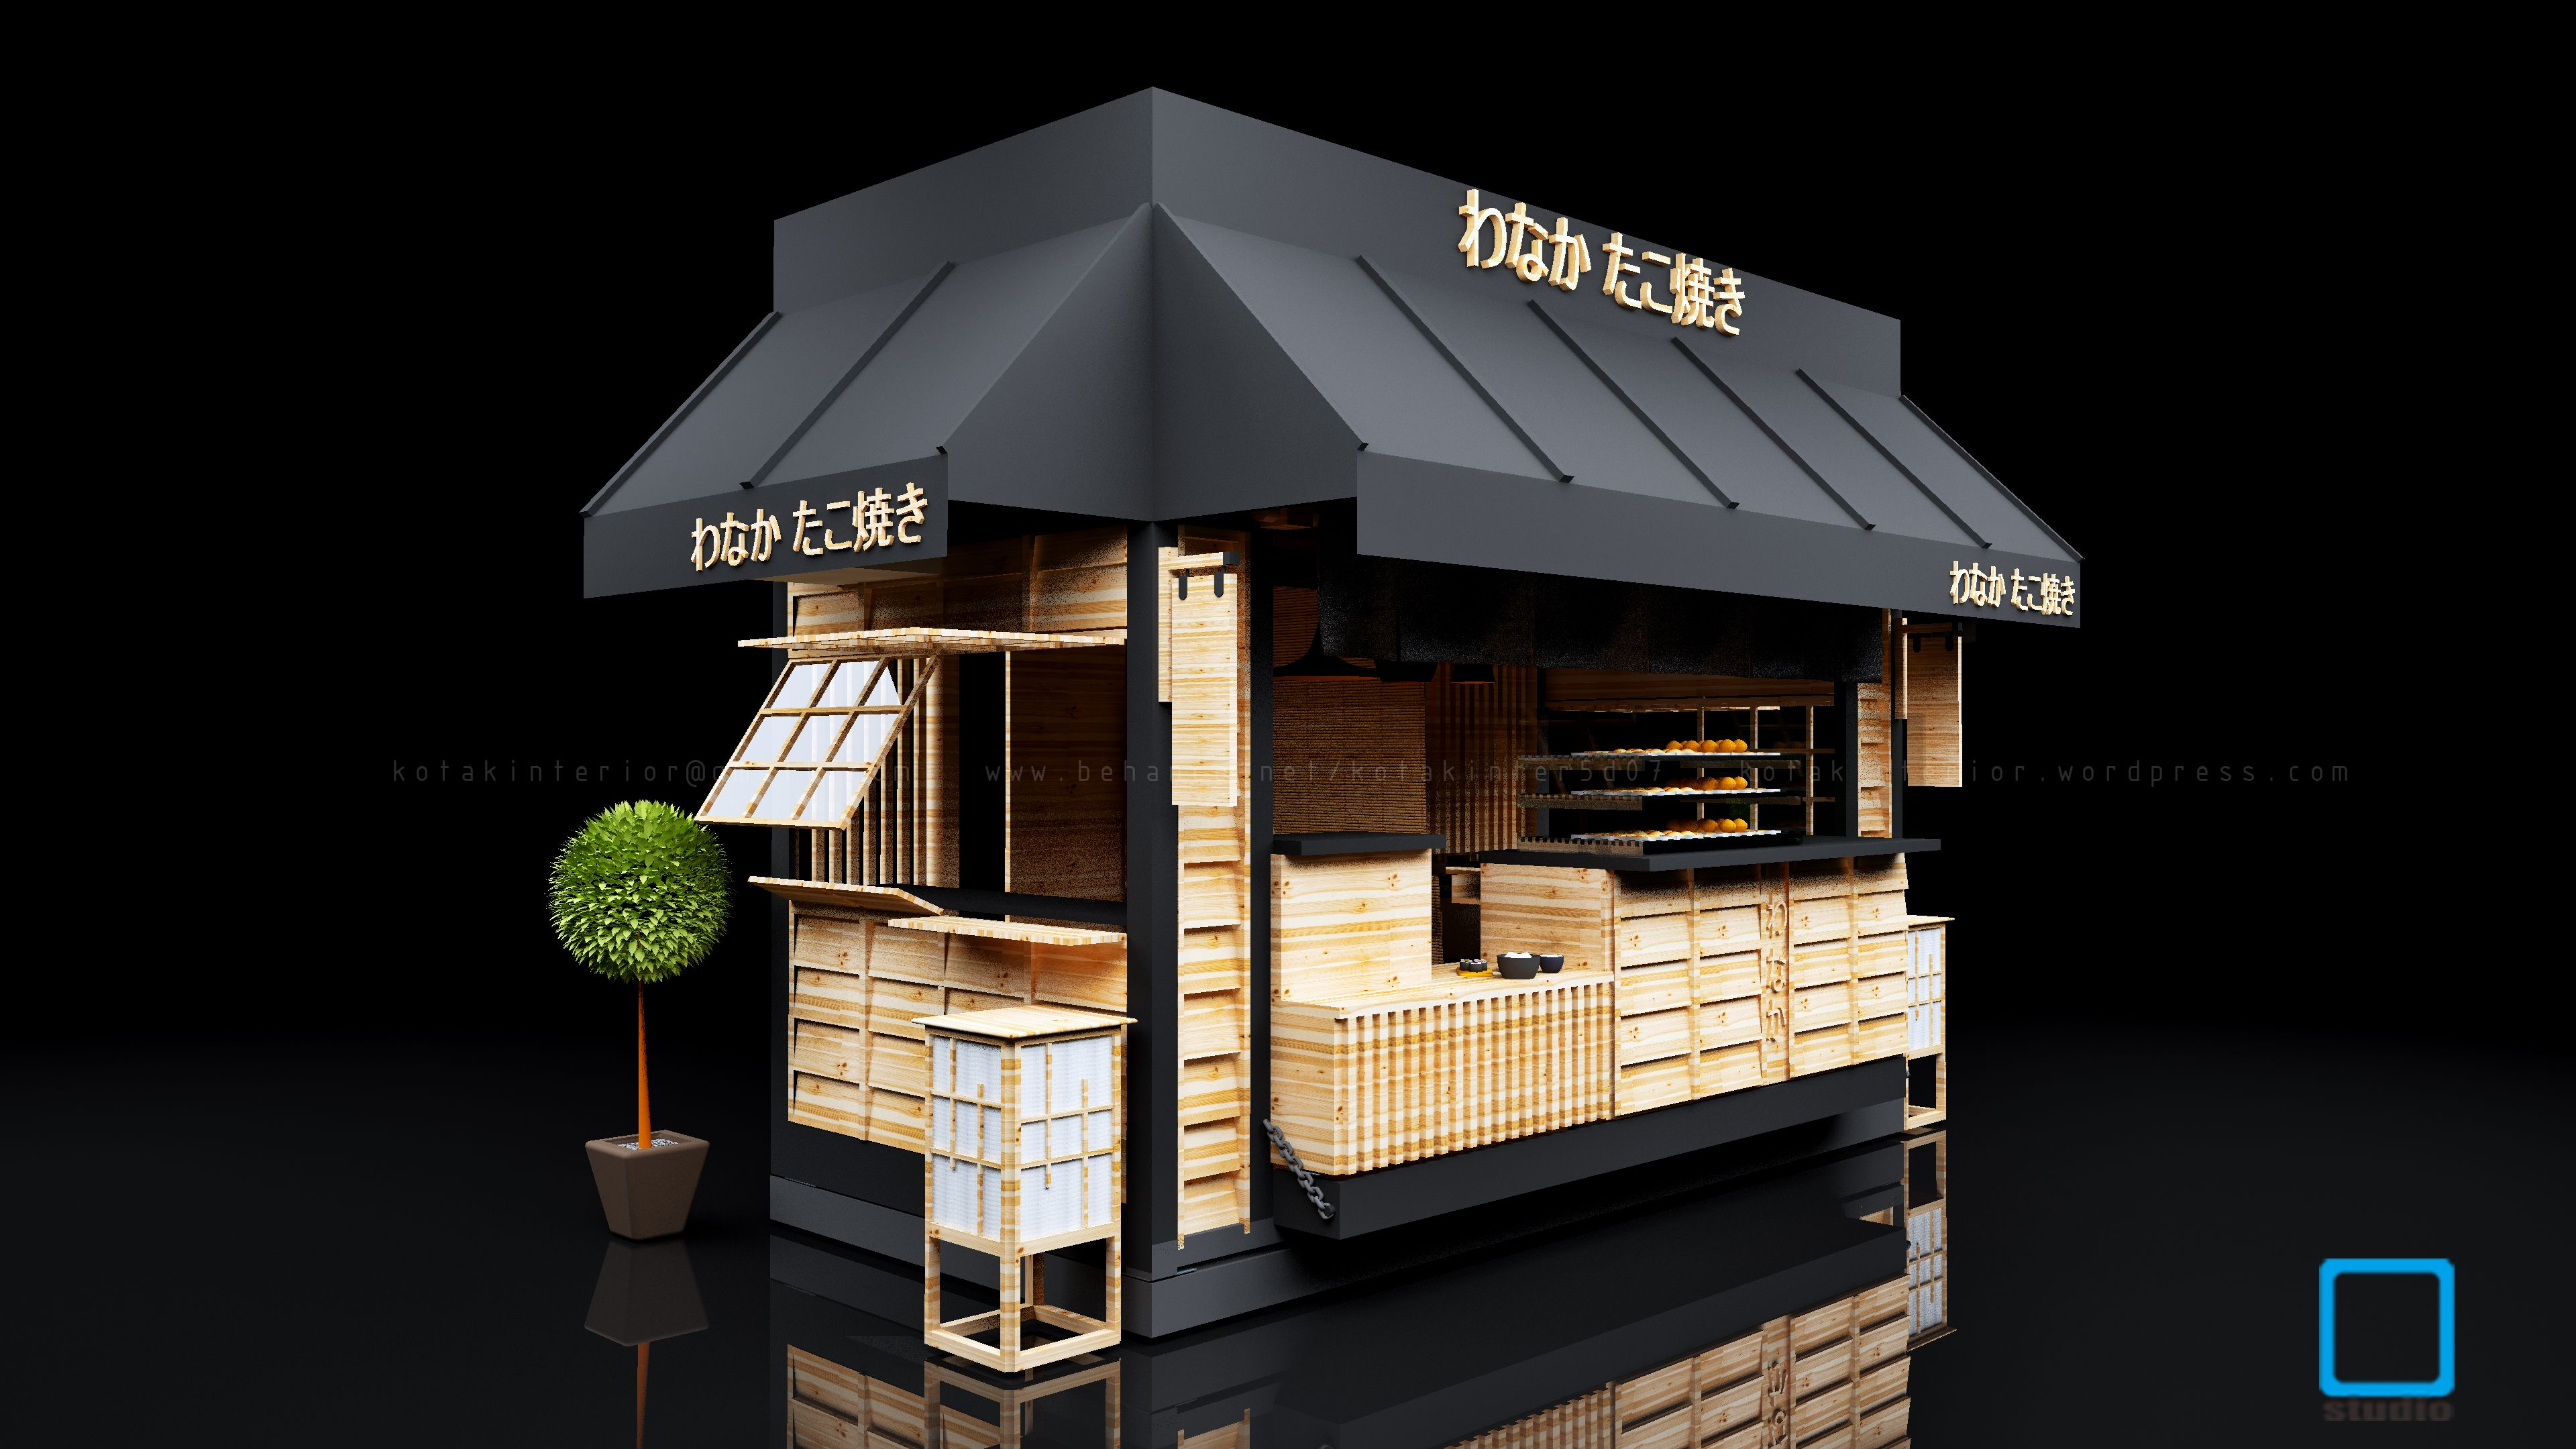 Architecture Kiosk Design Of Takoyaki Kiosk Kiosk Design Kiosk And Food Kiosk